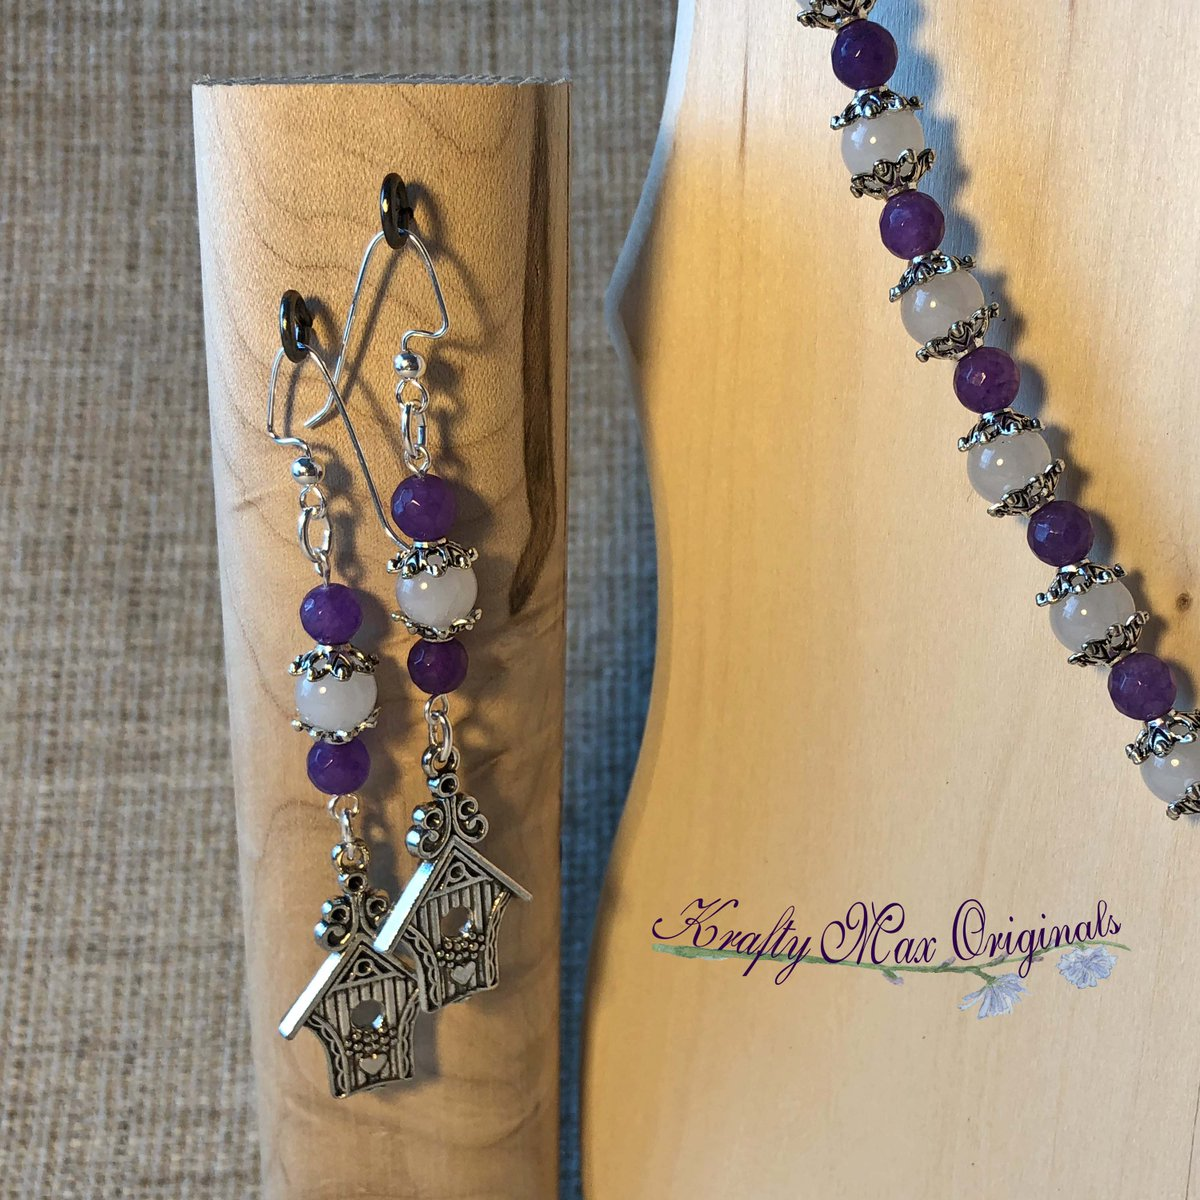 Purple and White Gemstone Necklace and Earrings Set with Birdhouses $38  #handmade #jewelry #supporthandmade #buyhandmade #handmadelove #jewelrydesigner #jewelryart #uniquejewelry #handcrafted #kraftymax #kmax